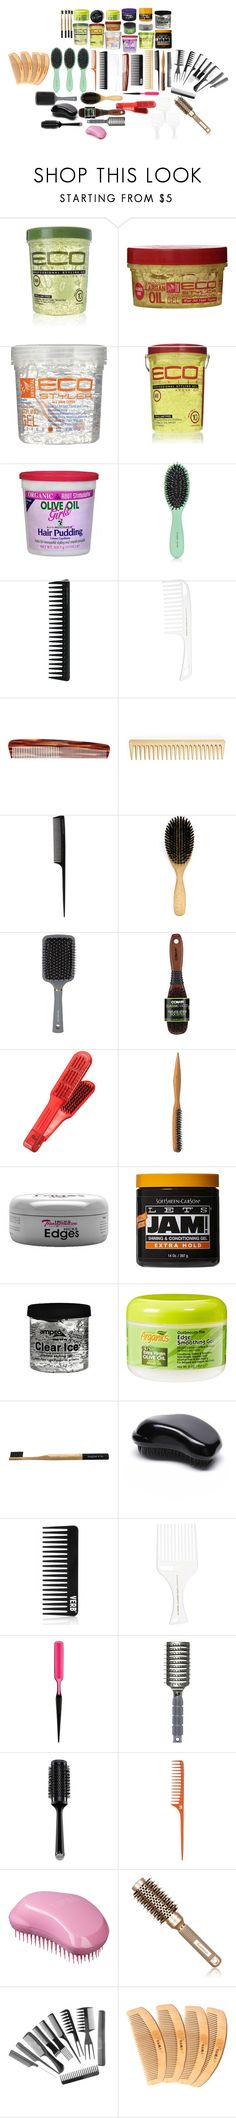 """""""hair"""" by cuteoutfits4you on Polyvore featuring Eco Style, Organic Root Stimulator, Harry Josh Pro Tools, GHD, Mason Pearson, AERIN, Orlando Pita, Conair, WithChic and Tangle Teezer"""